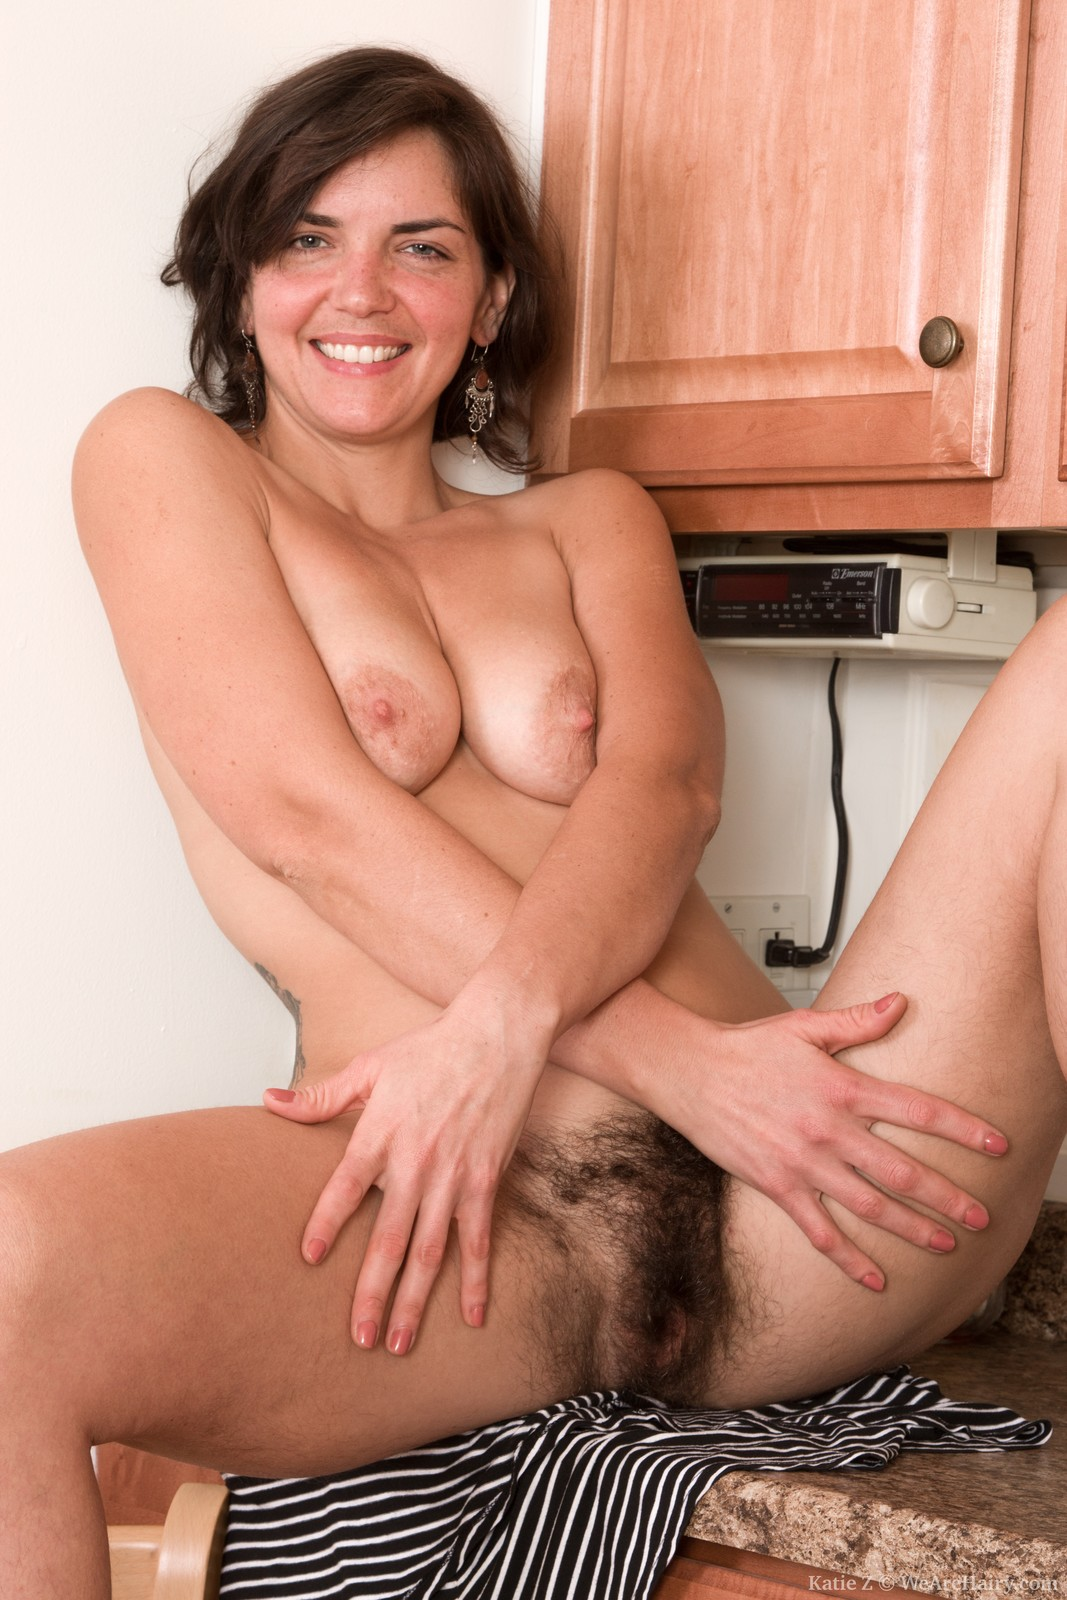 wpid-katie-z-strips-naked-in-the-kitchen-for-all13.jpg